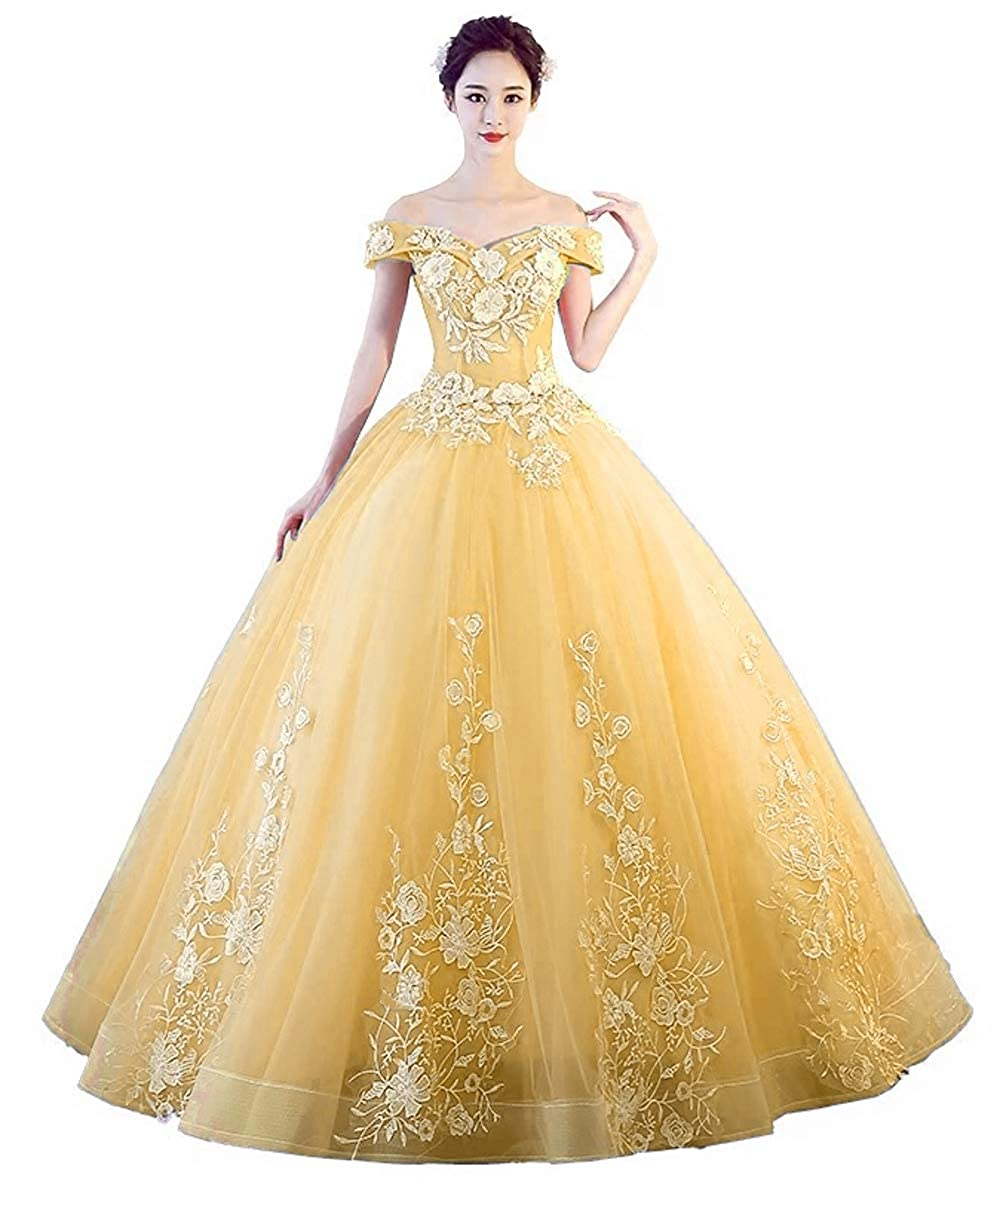 AYellow 1 LEJY Women's Off The Shoulder Quinceanera Dresses Applique Masquerade Ball Gowns Prom Dresses